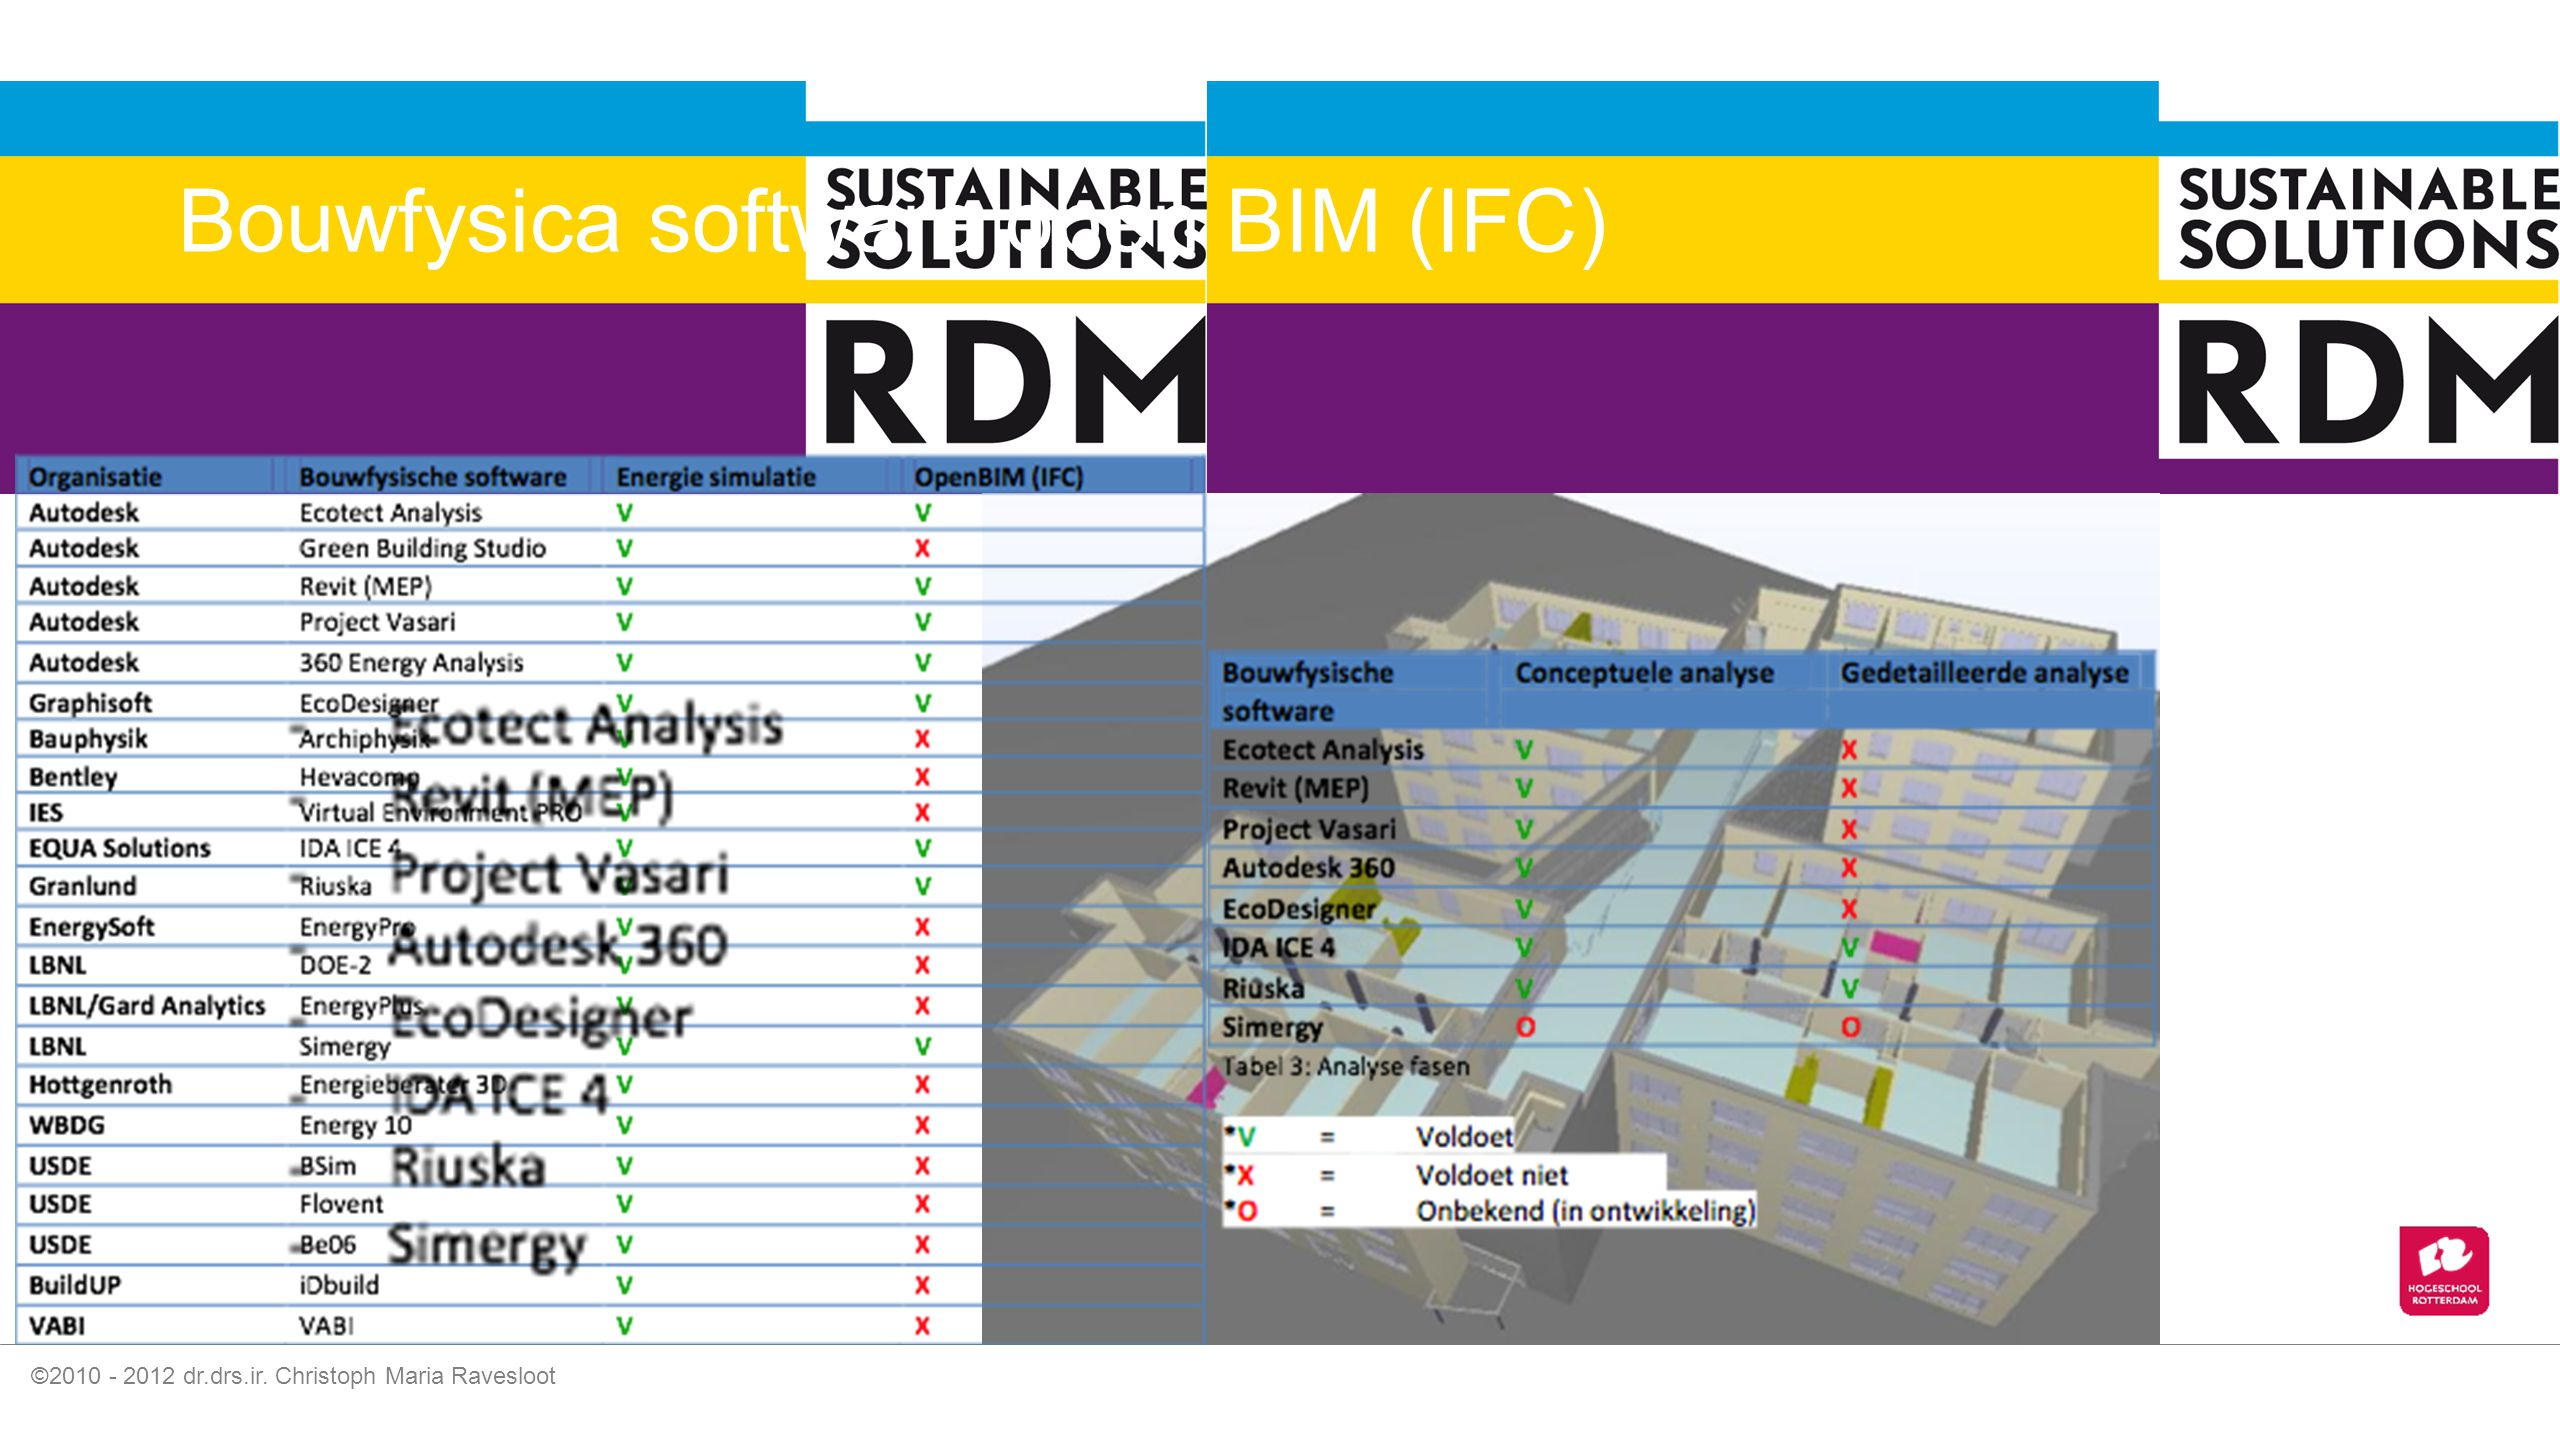 Bouwfysica software open BIM (IFC)